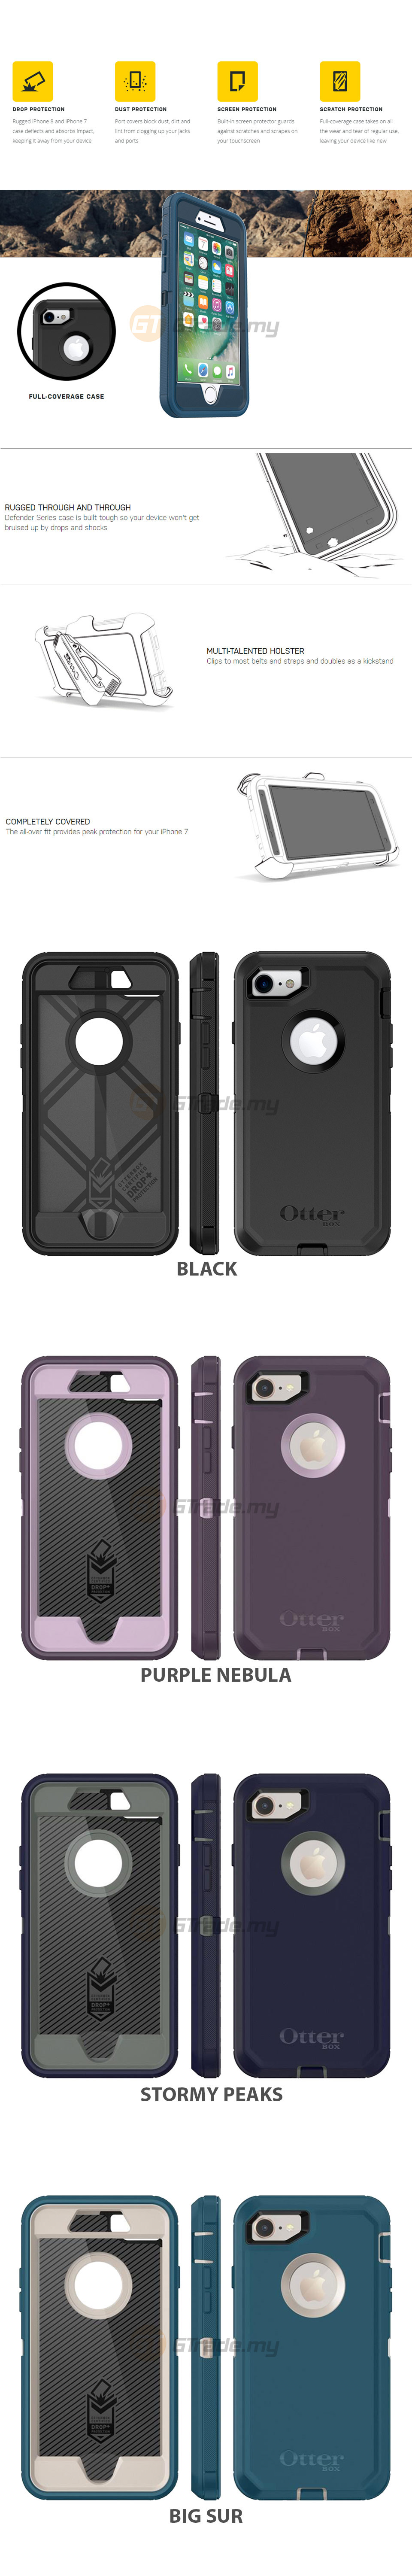 otterbox-defender-case-apple-iphone-8-p